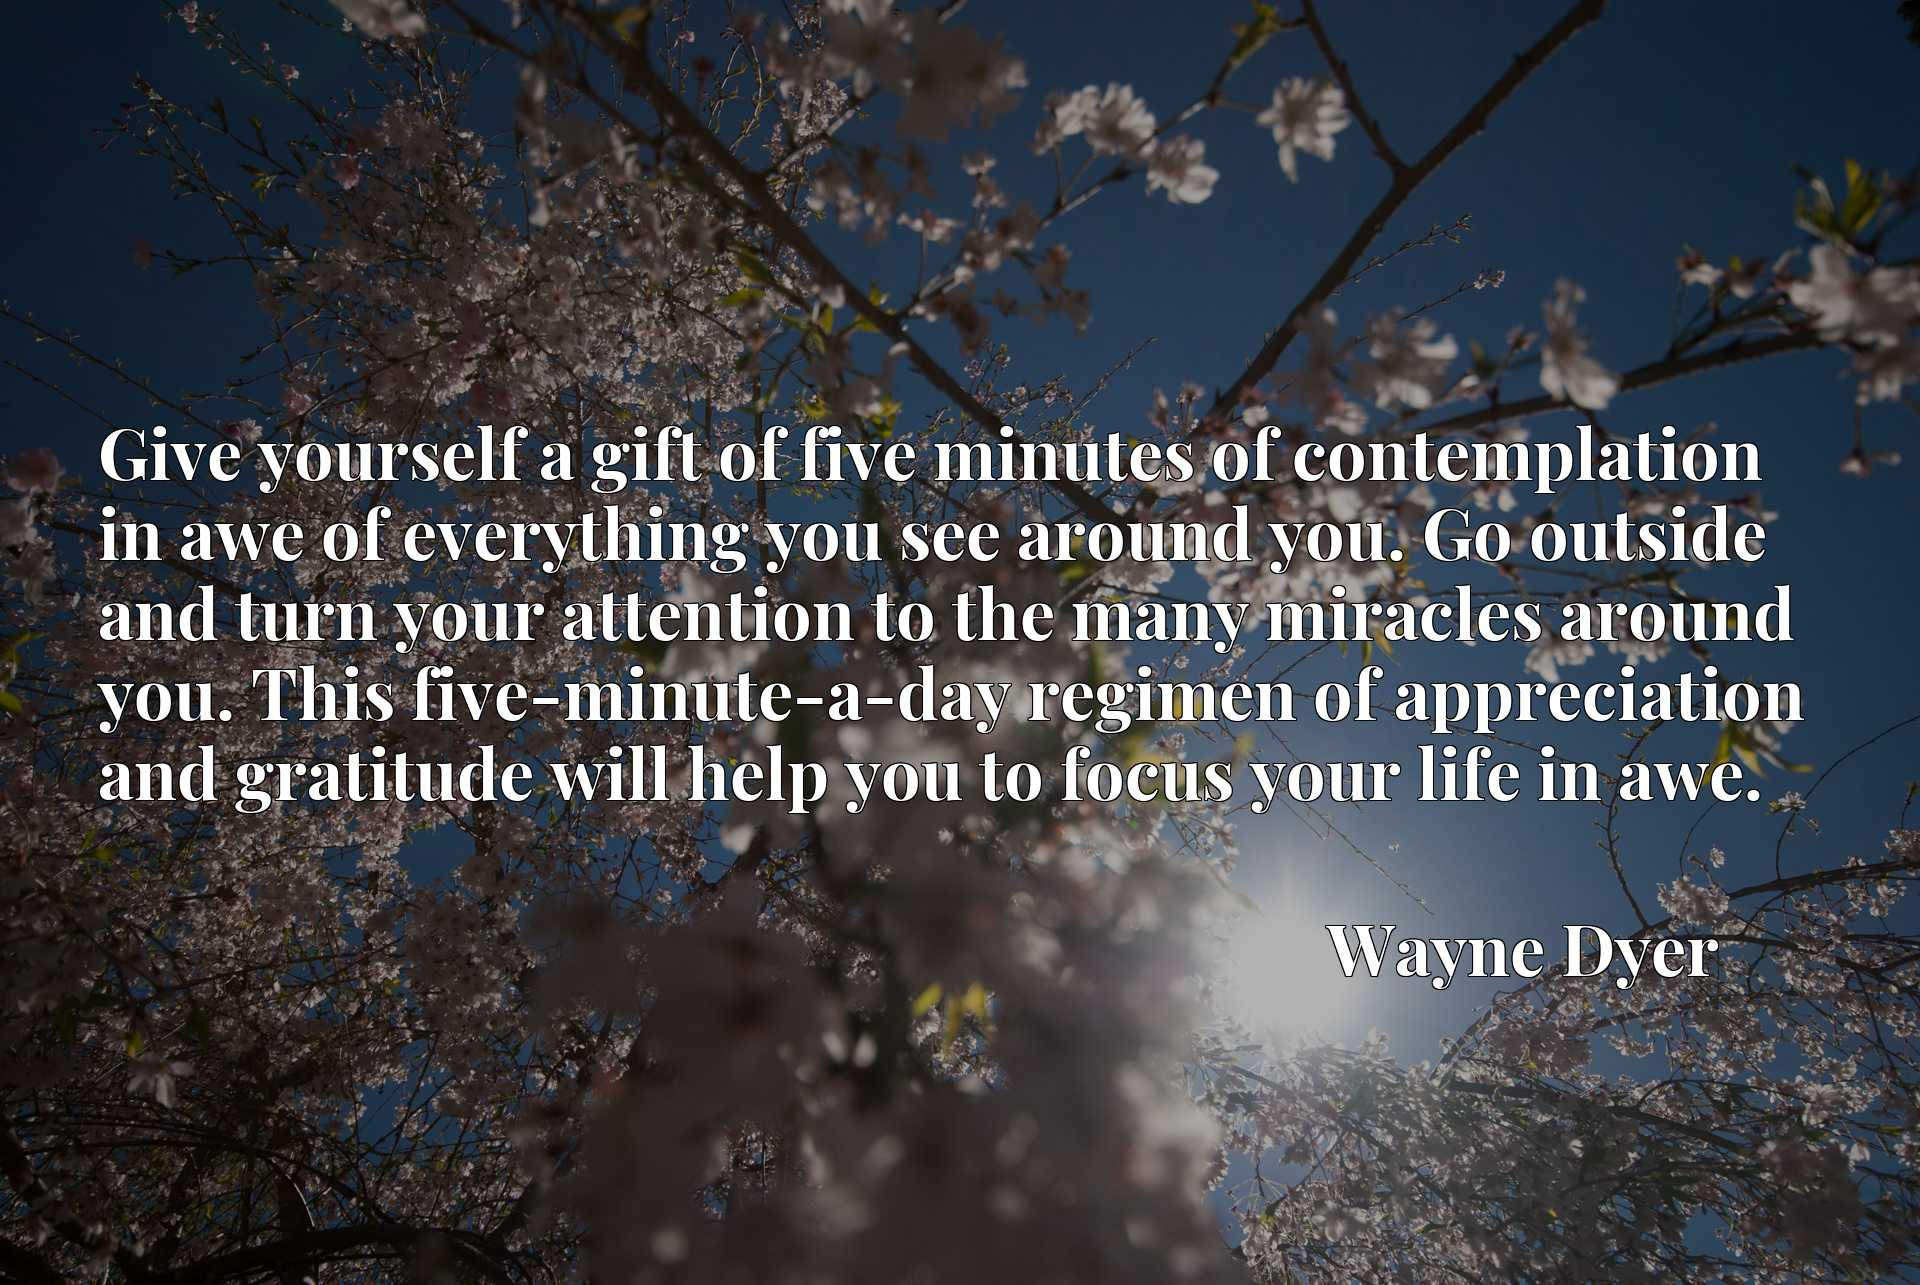 Give yourself a gift of five minutes of contemplation in awe of everything you see around you. Go outside and turn your attention to the many miracles around you. This five-minute-a-day regimen of appreciation and gratitude will help you to focus your life in awe.